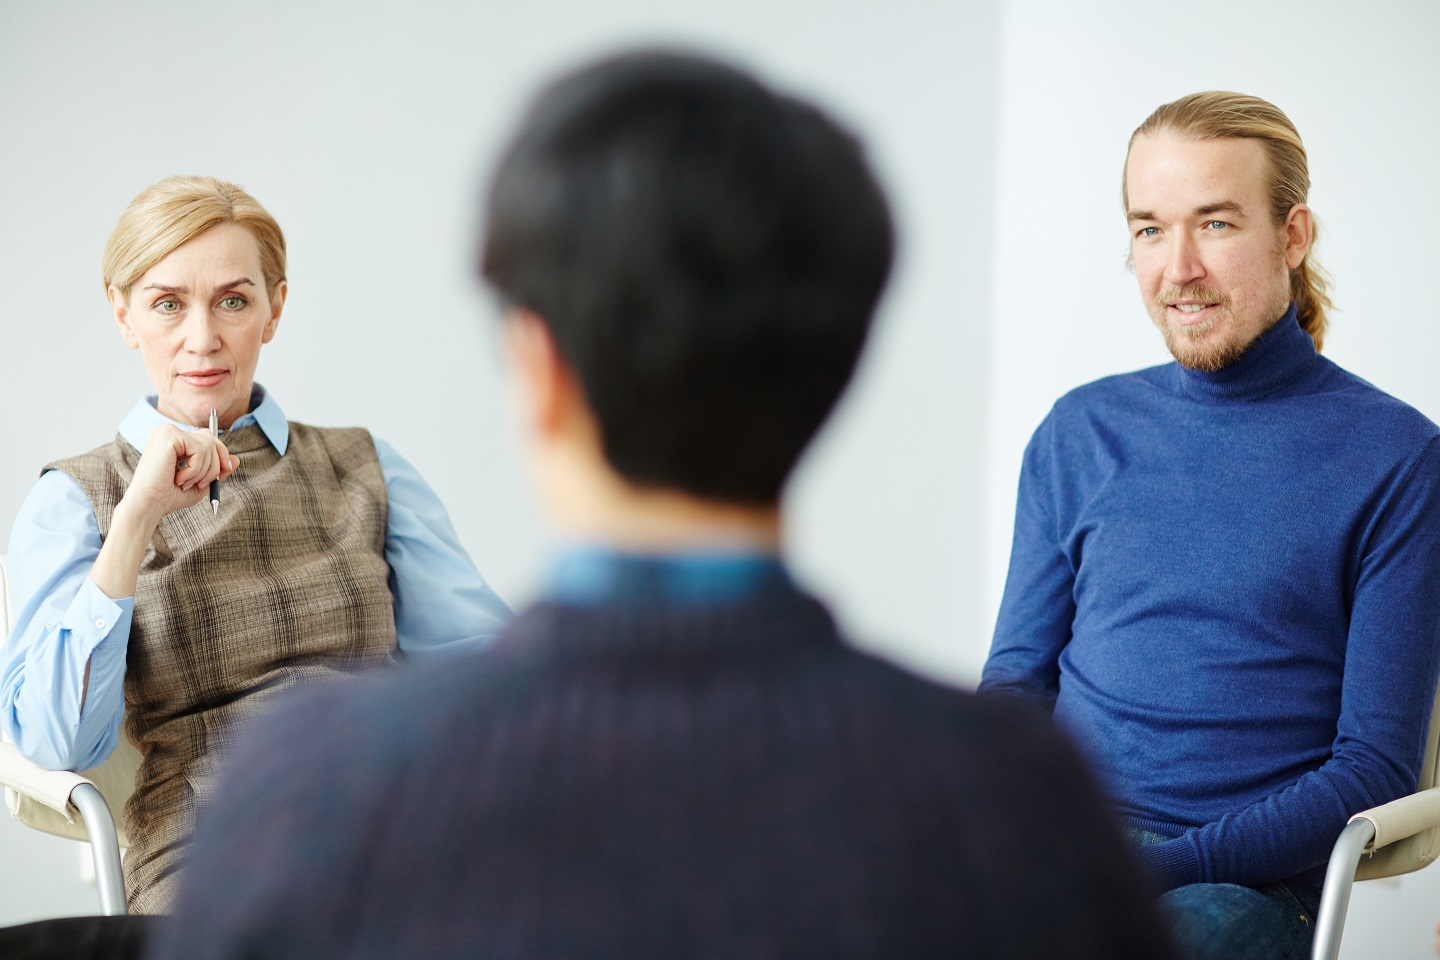 Listening: An important soft skill for anyone in the workplace, part 2